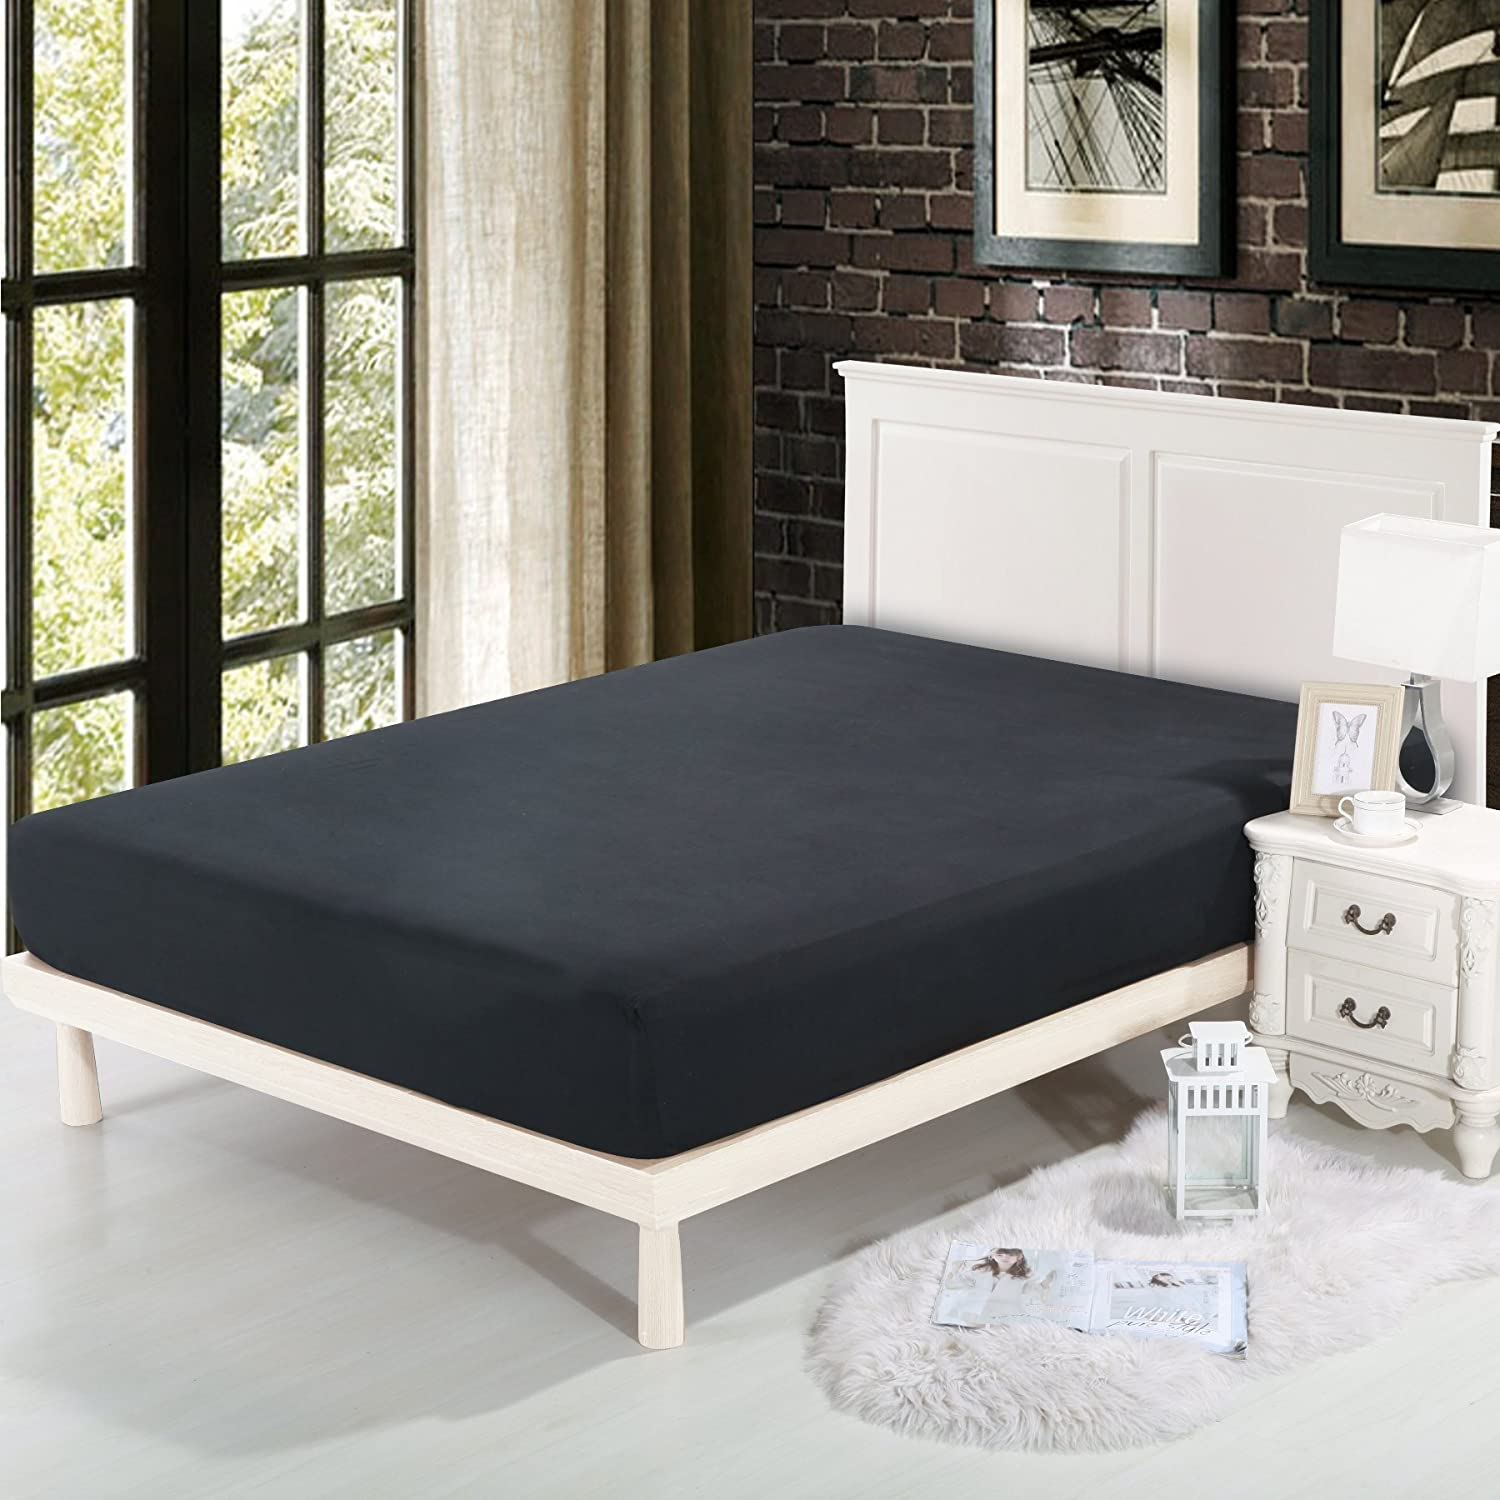 Twin, Black One Fitted Bed Sheet Double-Side Brushed Finish Lullabi Bedding Microfiber Fade Stain Resistant Wrinkle